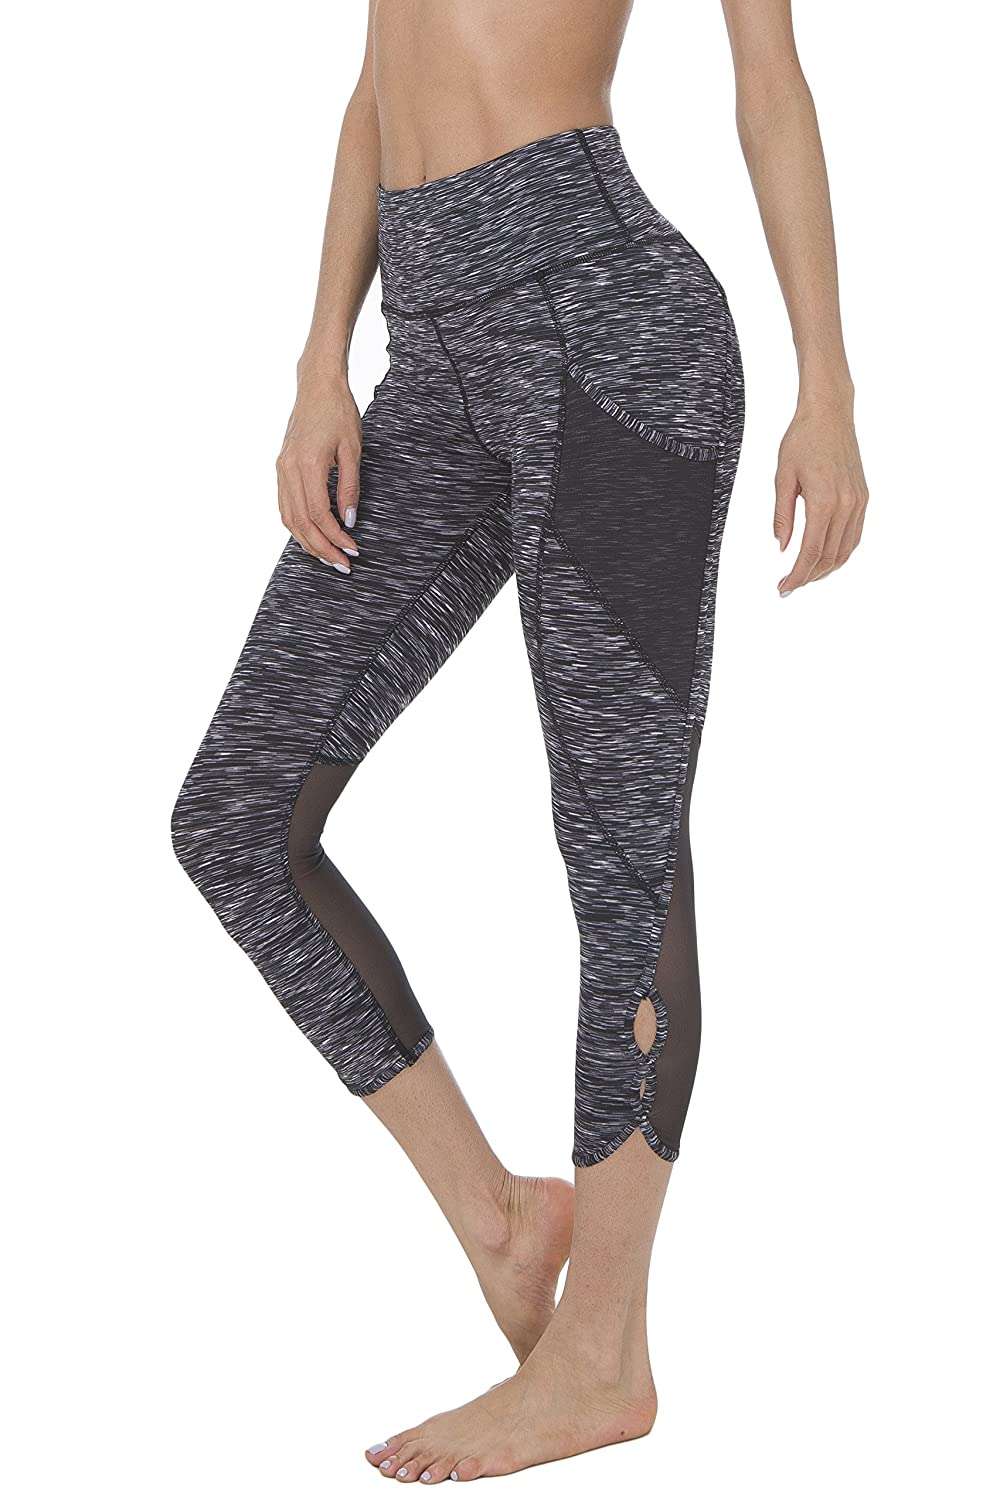 ecb4bb7914 SOLID:86% Nylon 14% Spandex, SPACE DYE: 87% Polyester 13% Spandex Imported  The High Waist Tummy Control Power Flex Leggings by Queenie Ke are the  affordable ...